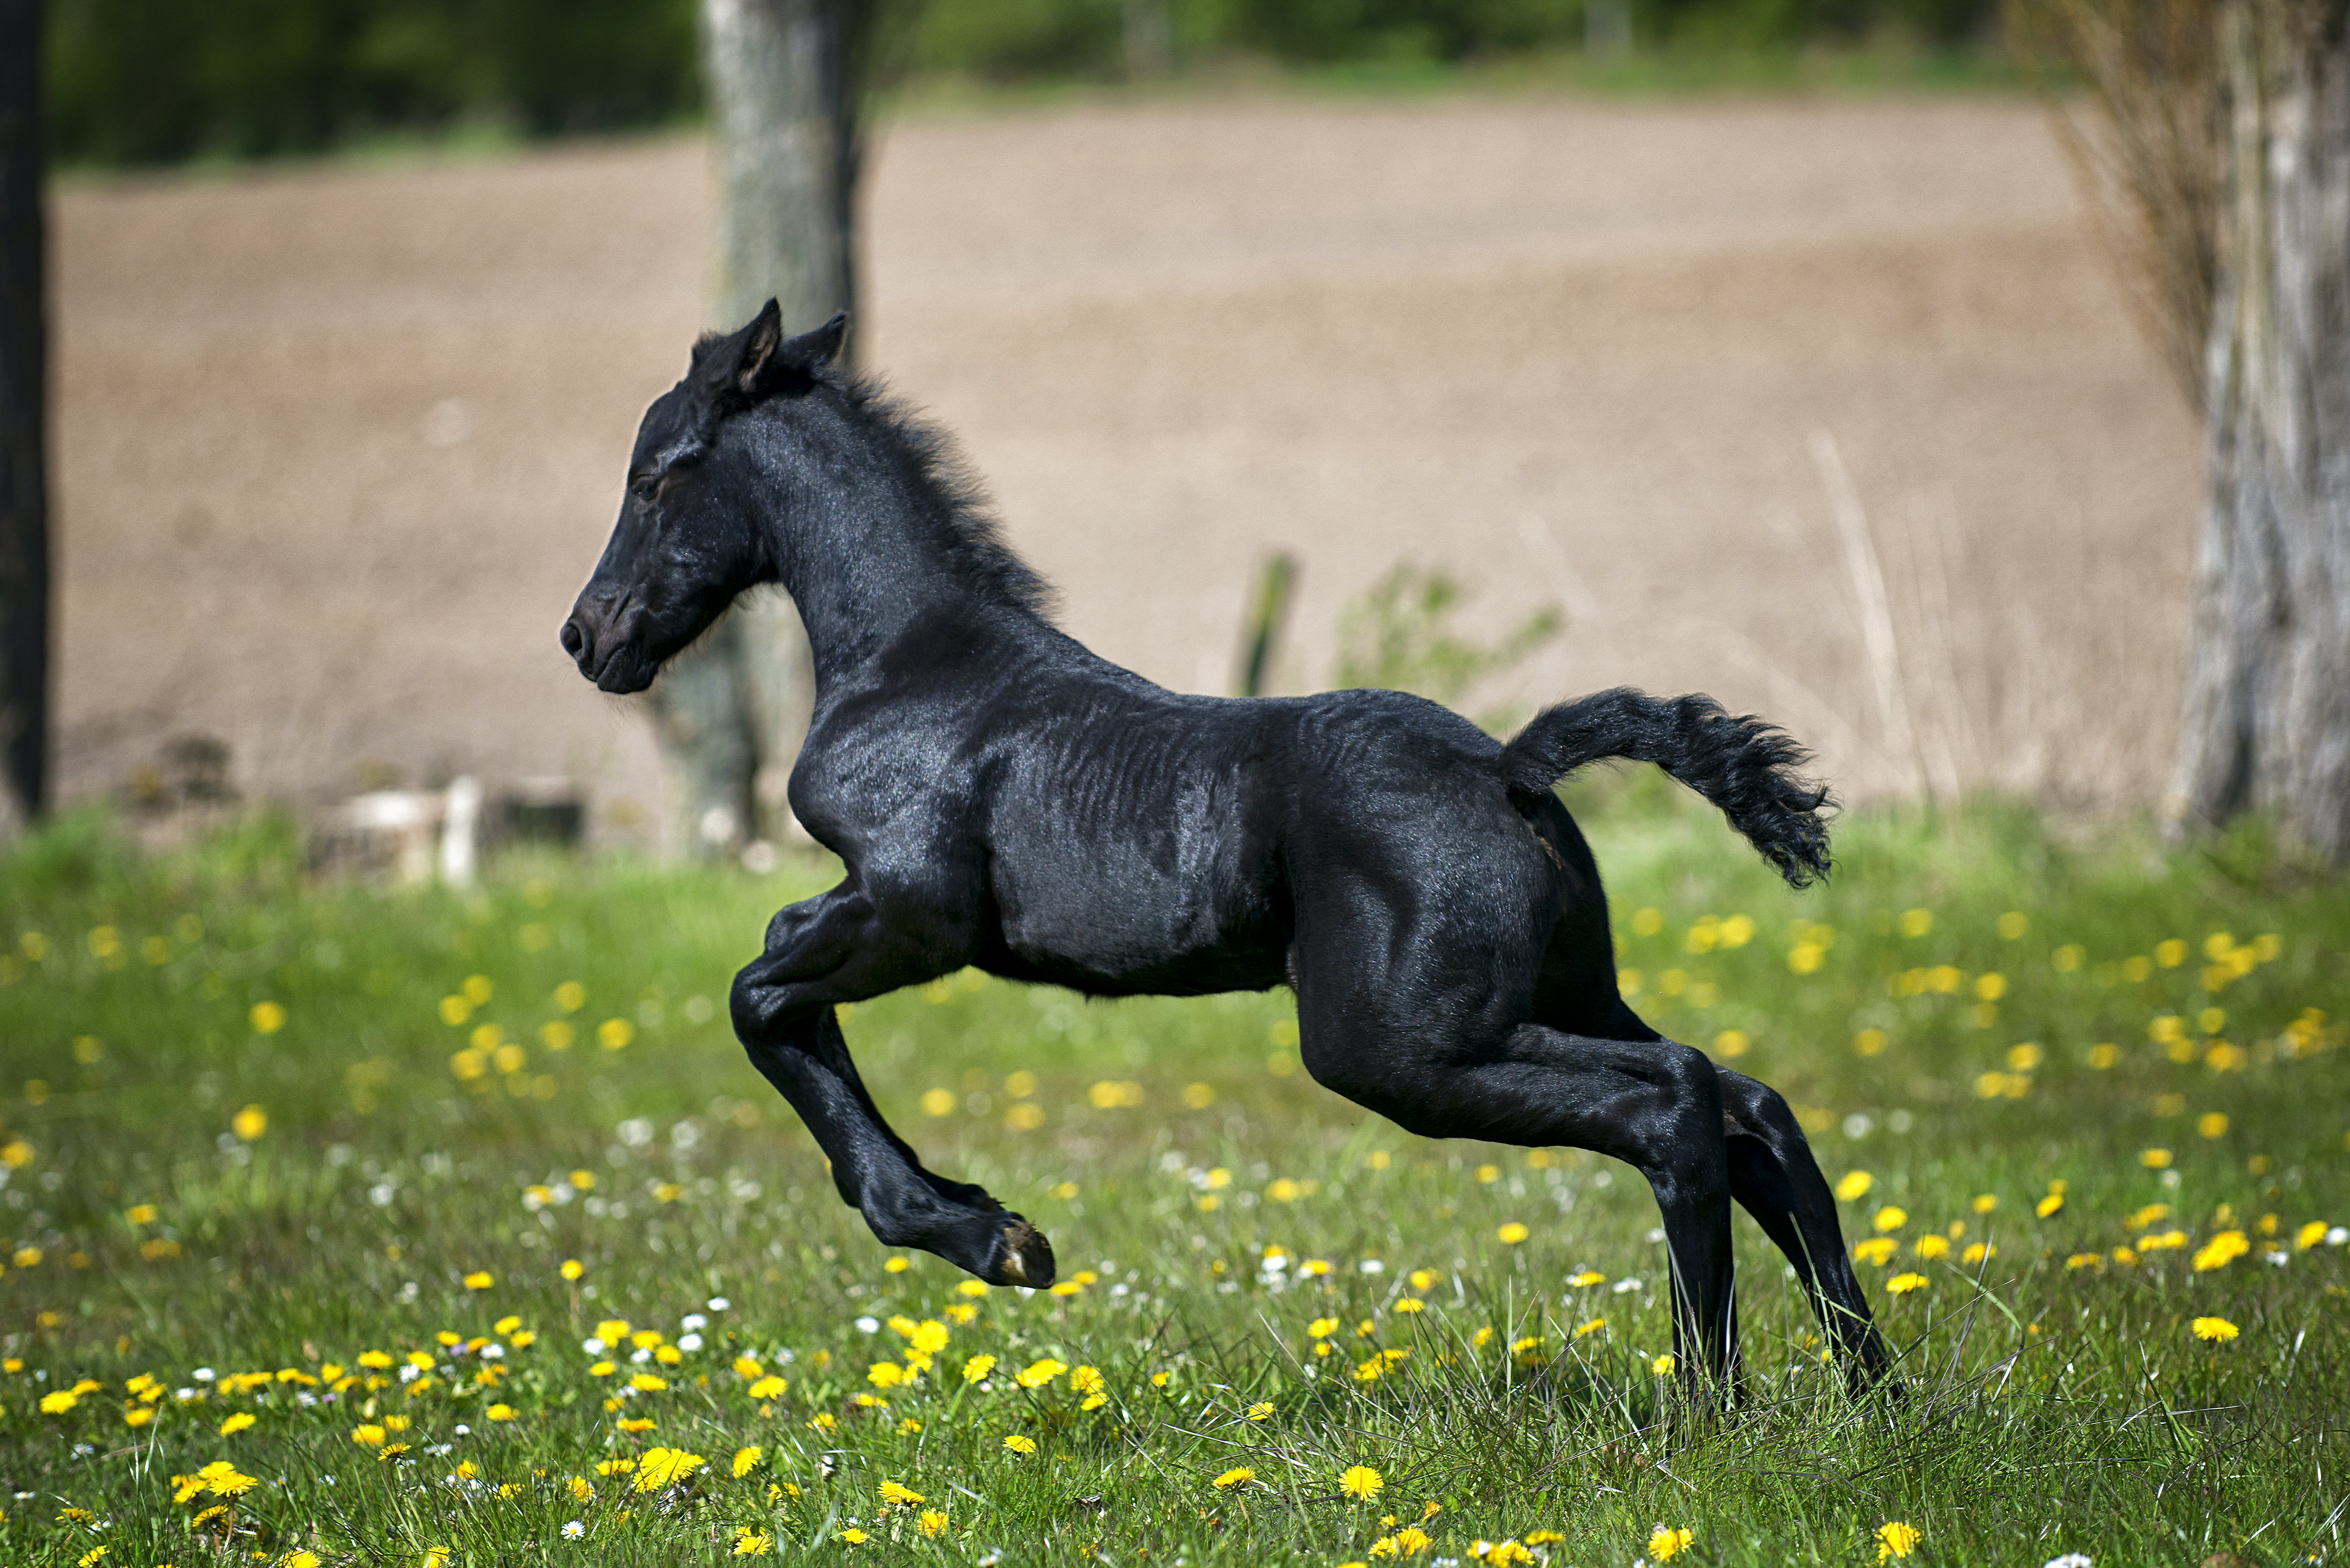 Black Horse Running on Grass Field With Flowers